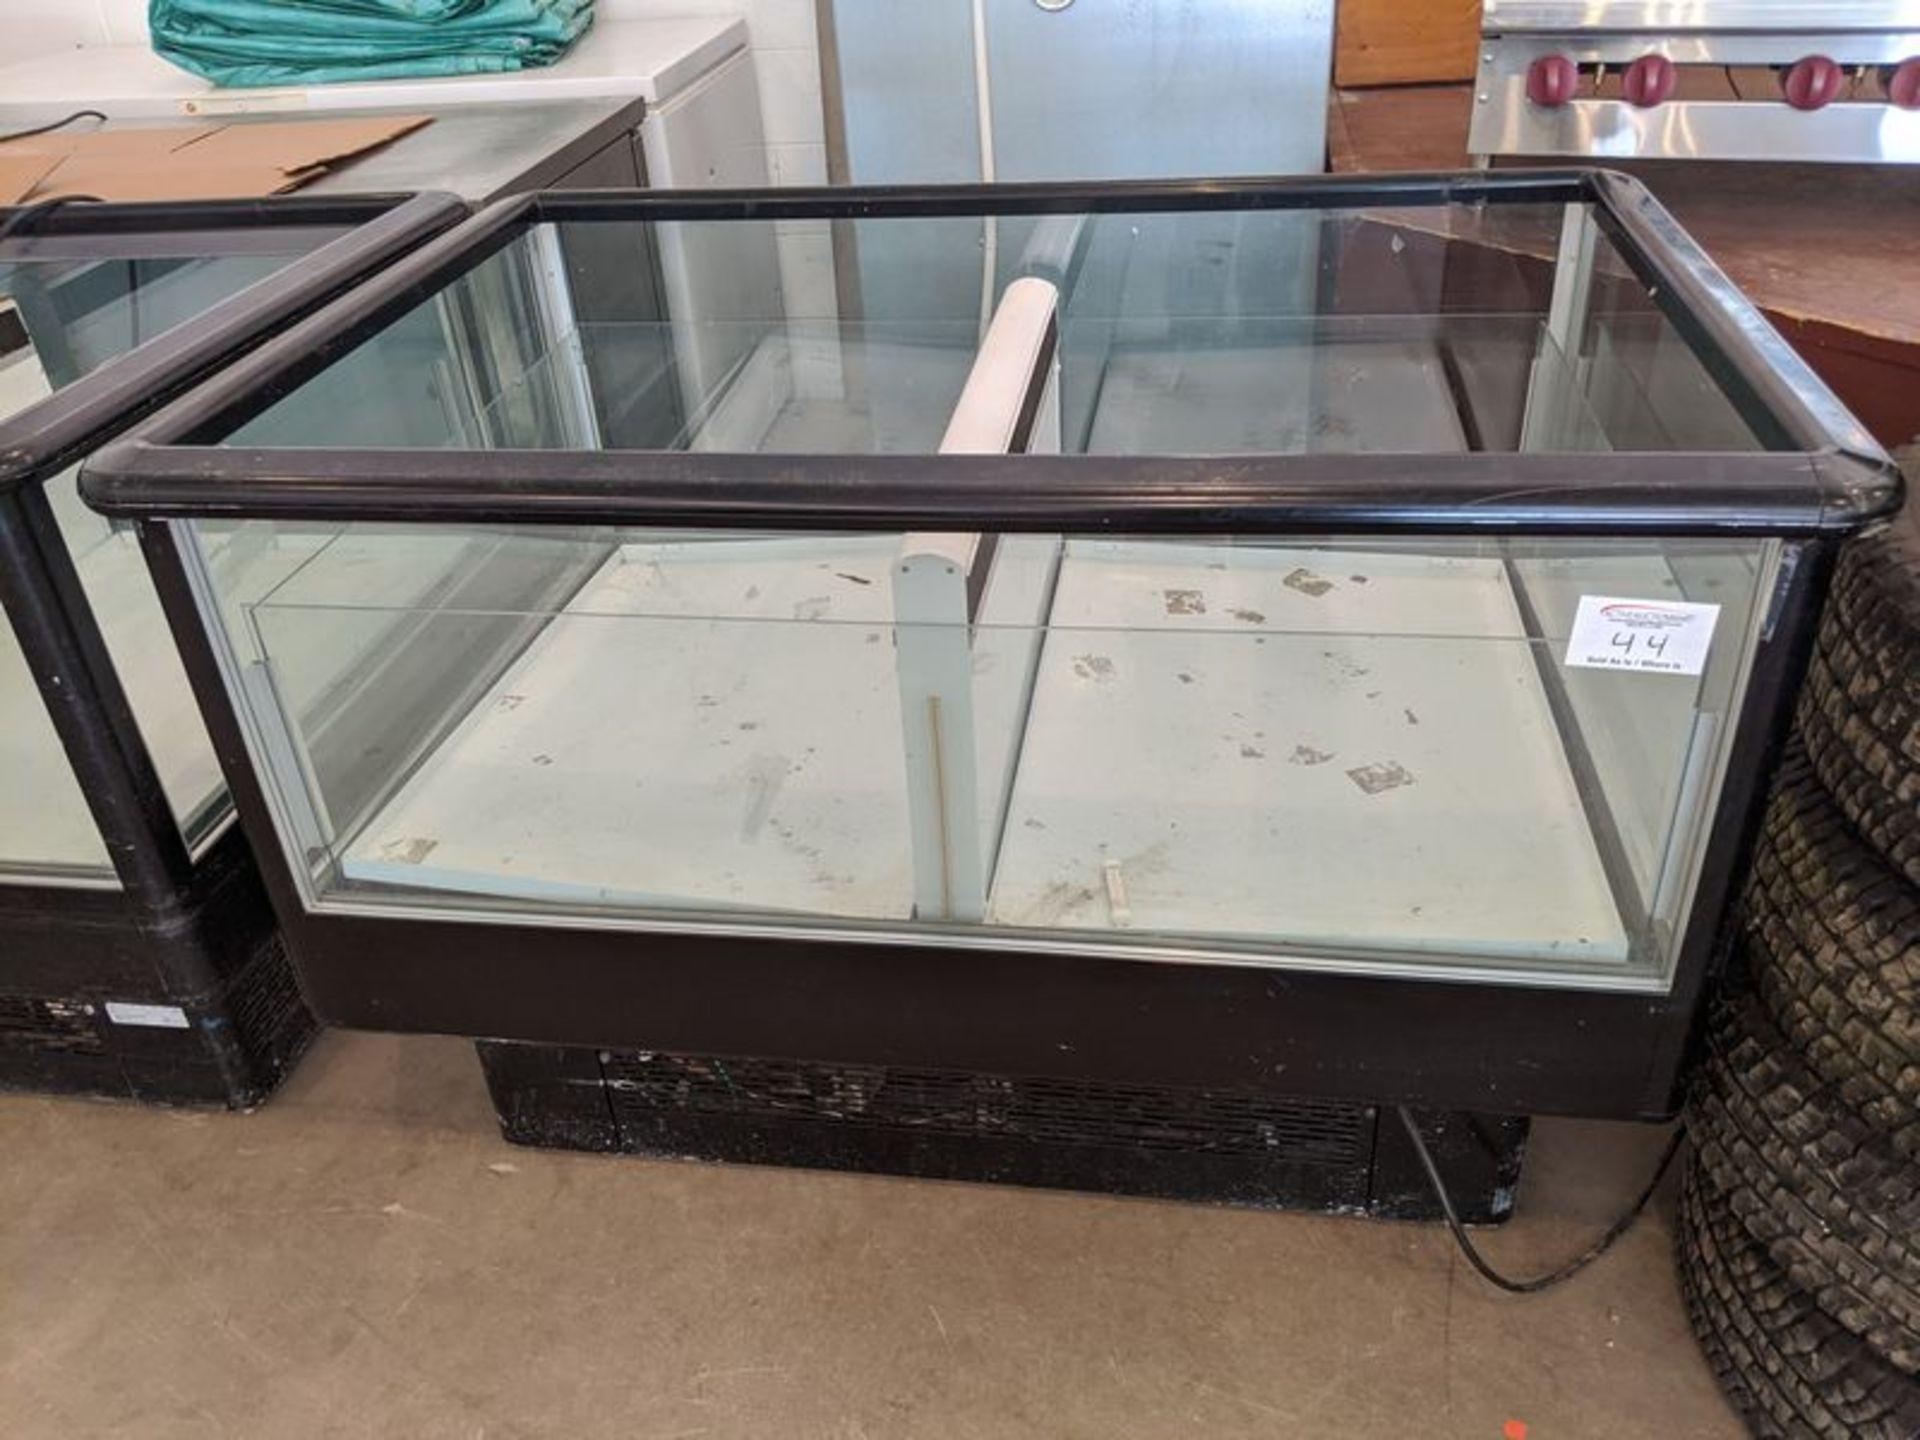 Lot 44 - Refrigerated Reach in Produce Merchandiser on Casters